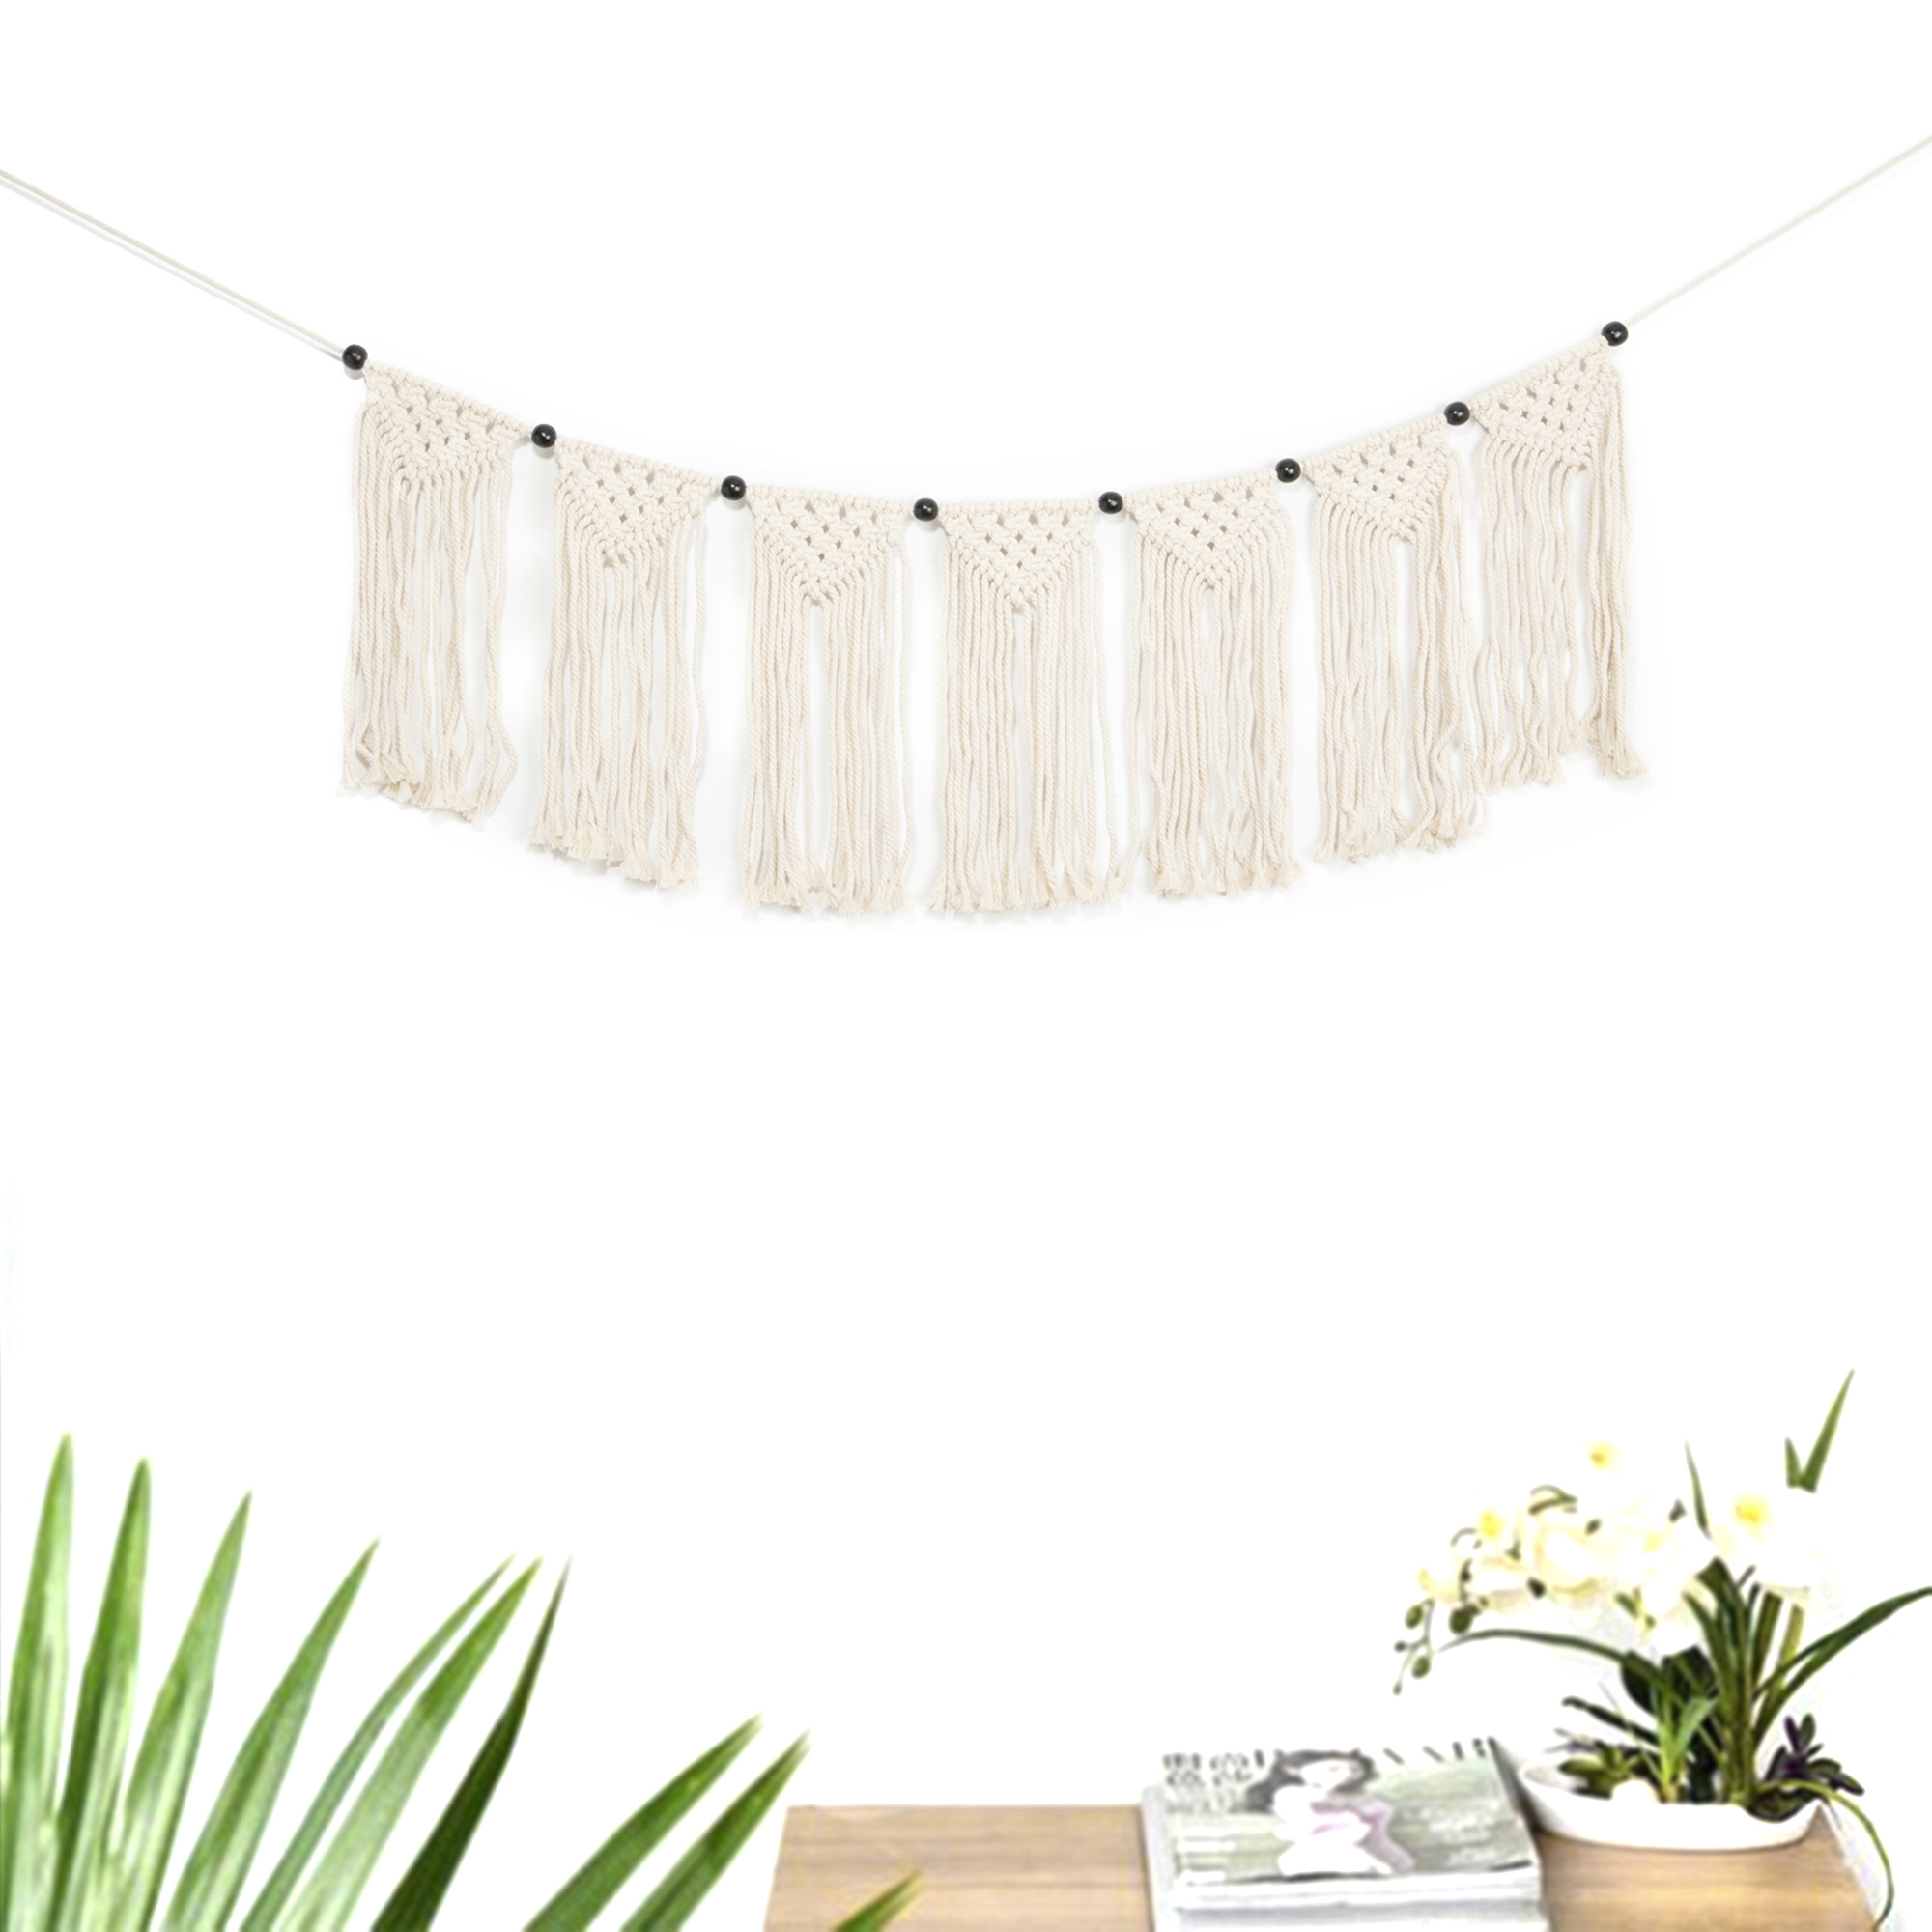 Woven Wall Tapestry Macrame Wall Hanging Boho Wedding Decoration Curtain Fringe Garland Banner Bohemian Cotton Handmade Wall Art Home Wall Decor 42 5 X 9 Walmart Com Walmart Com